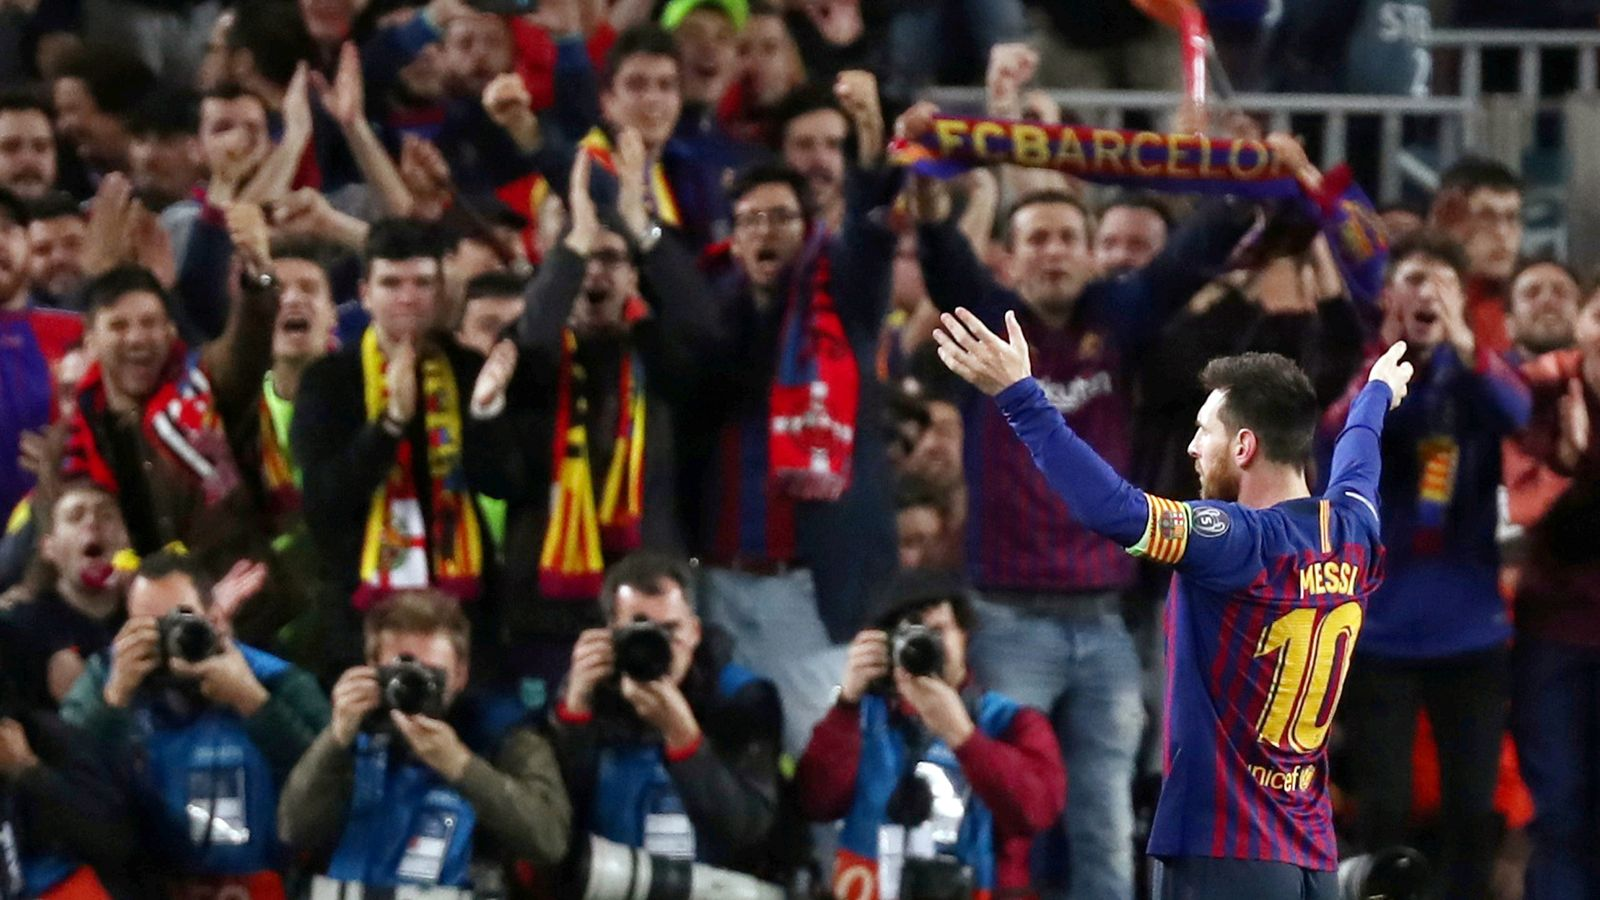 Lionel Messi to hold news conference in first public appearance since shock Barcelona exit announced